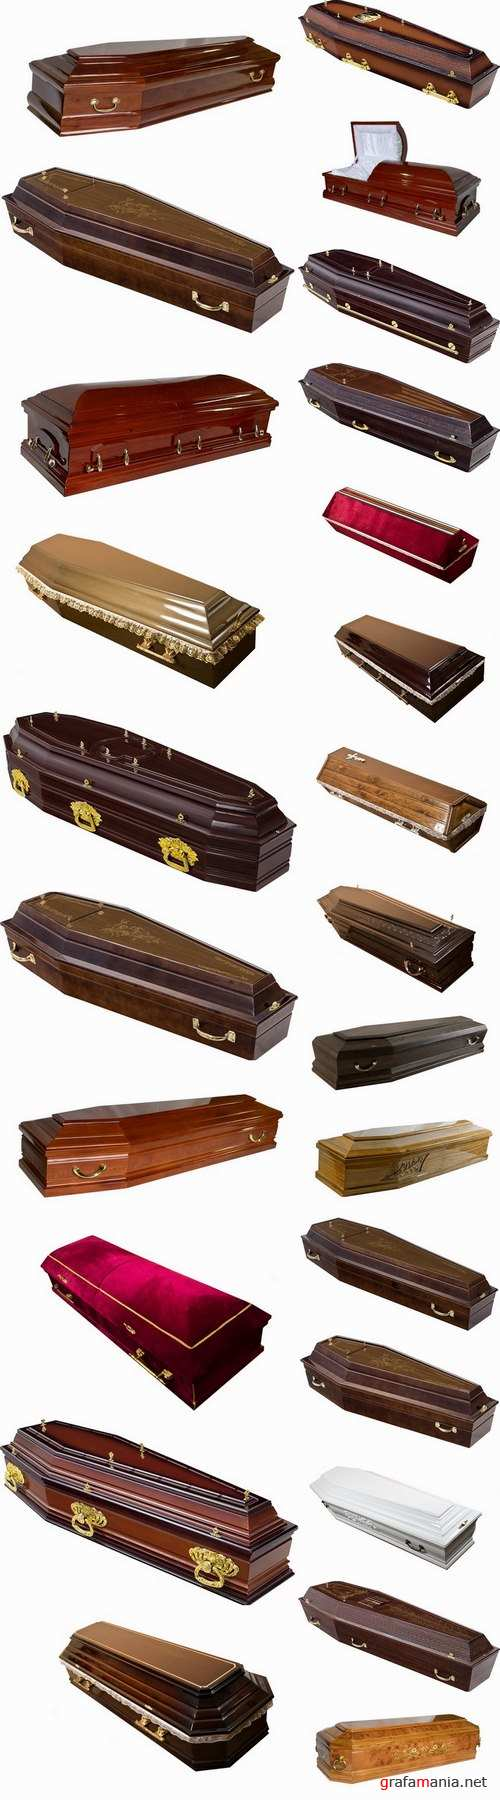 Coffin and precious wood 25 HQ Jpeg